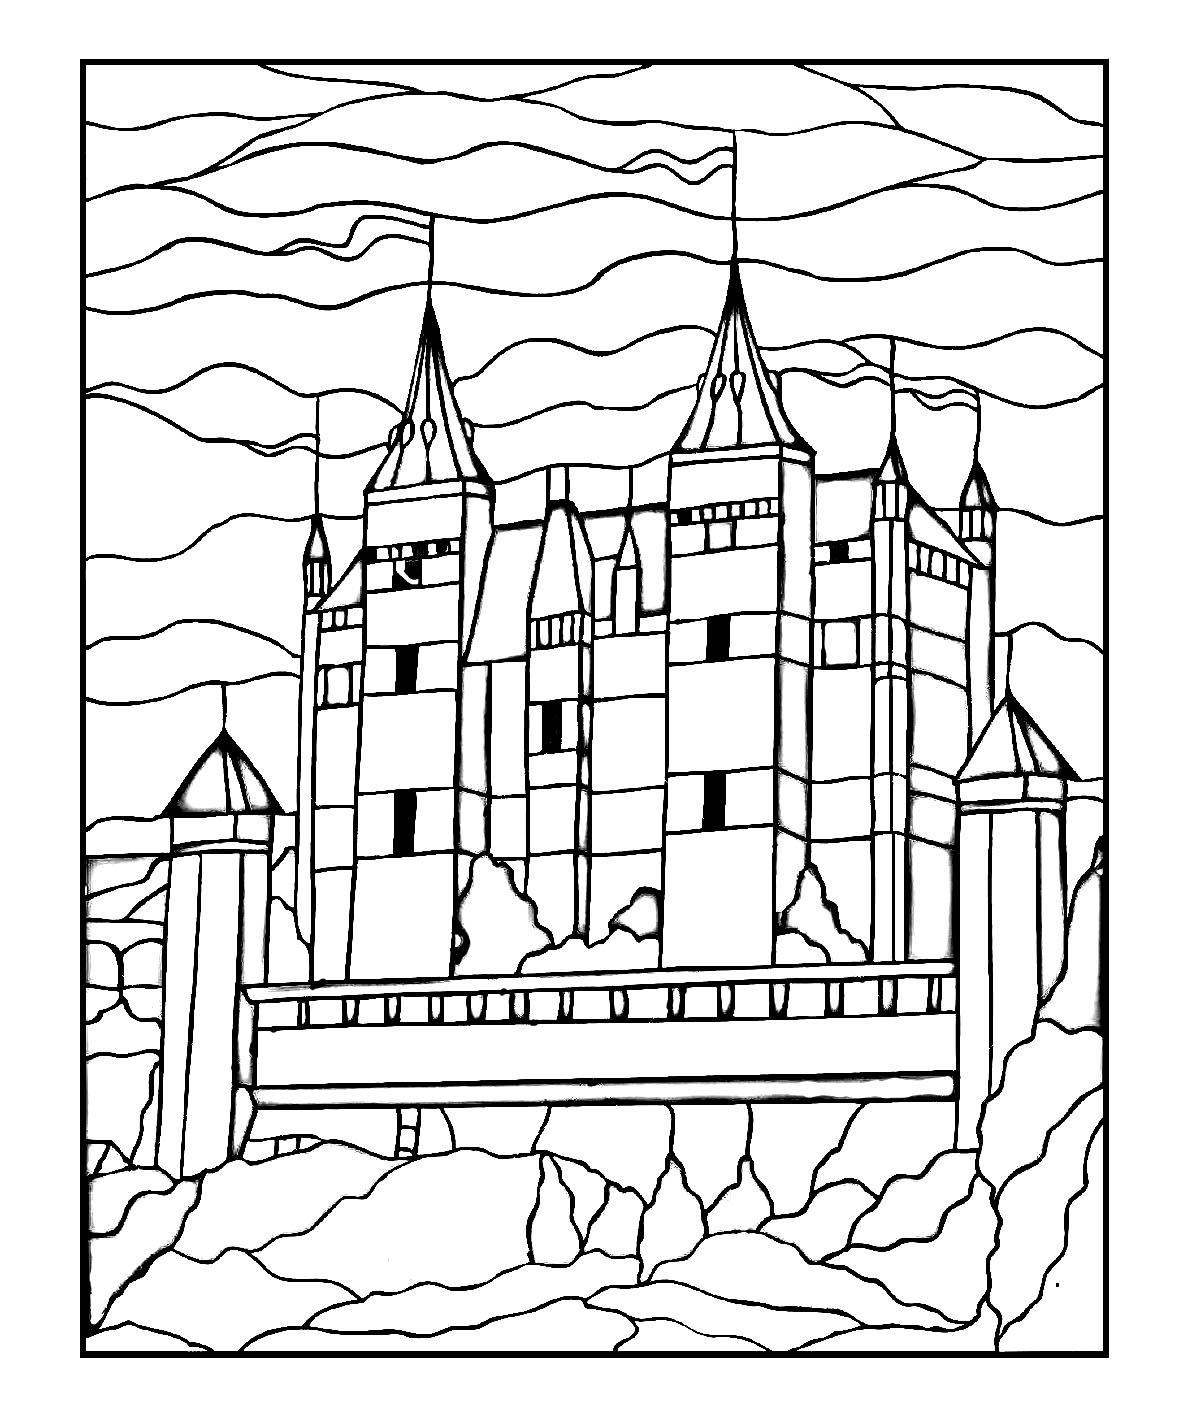 pour dessin chateau gratuit a imprimer coloriage adulte. Black Bedroom Furniture Sets. Home Design Ideas